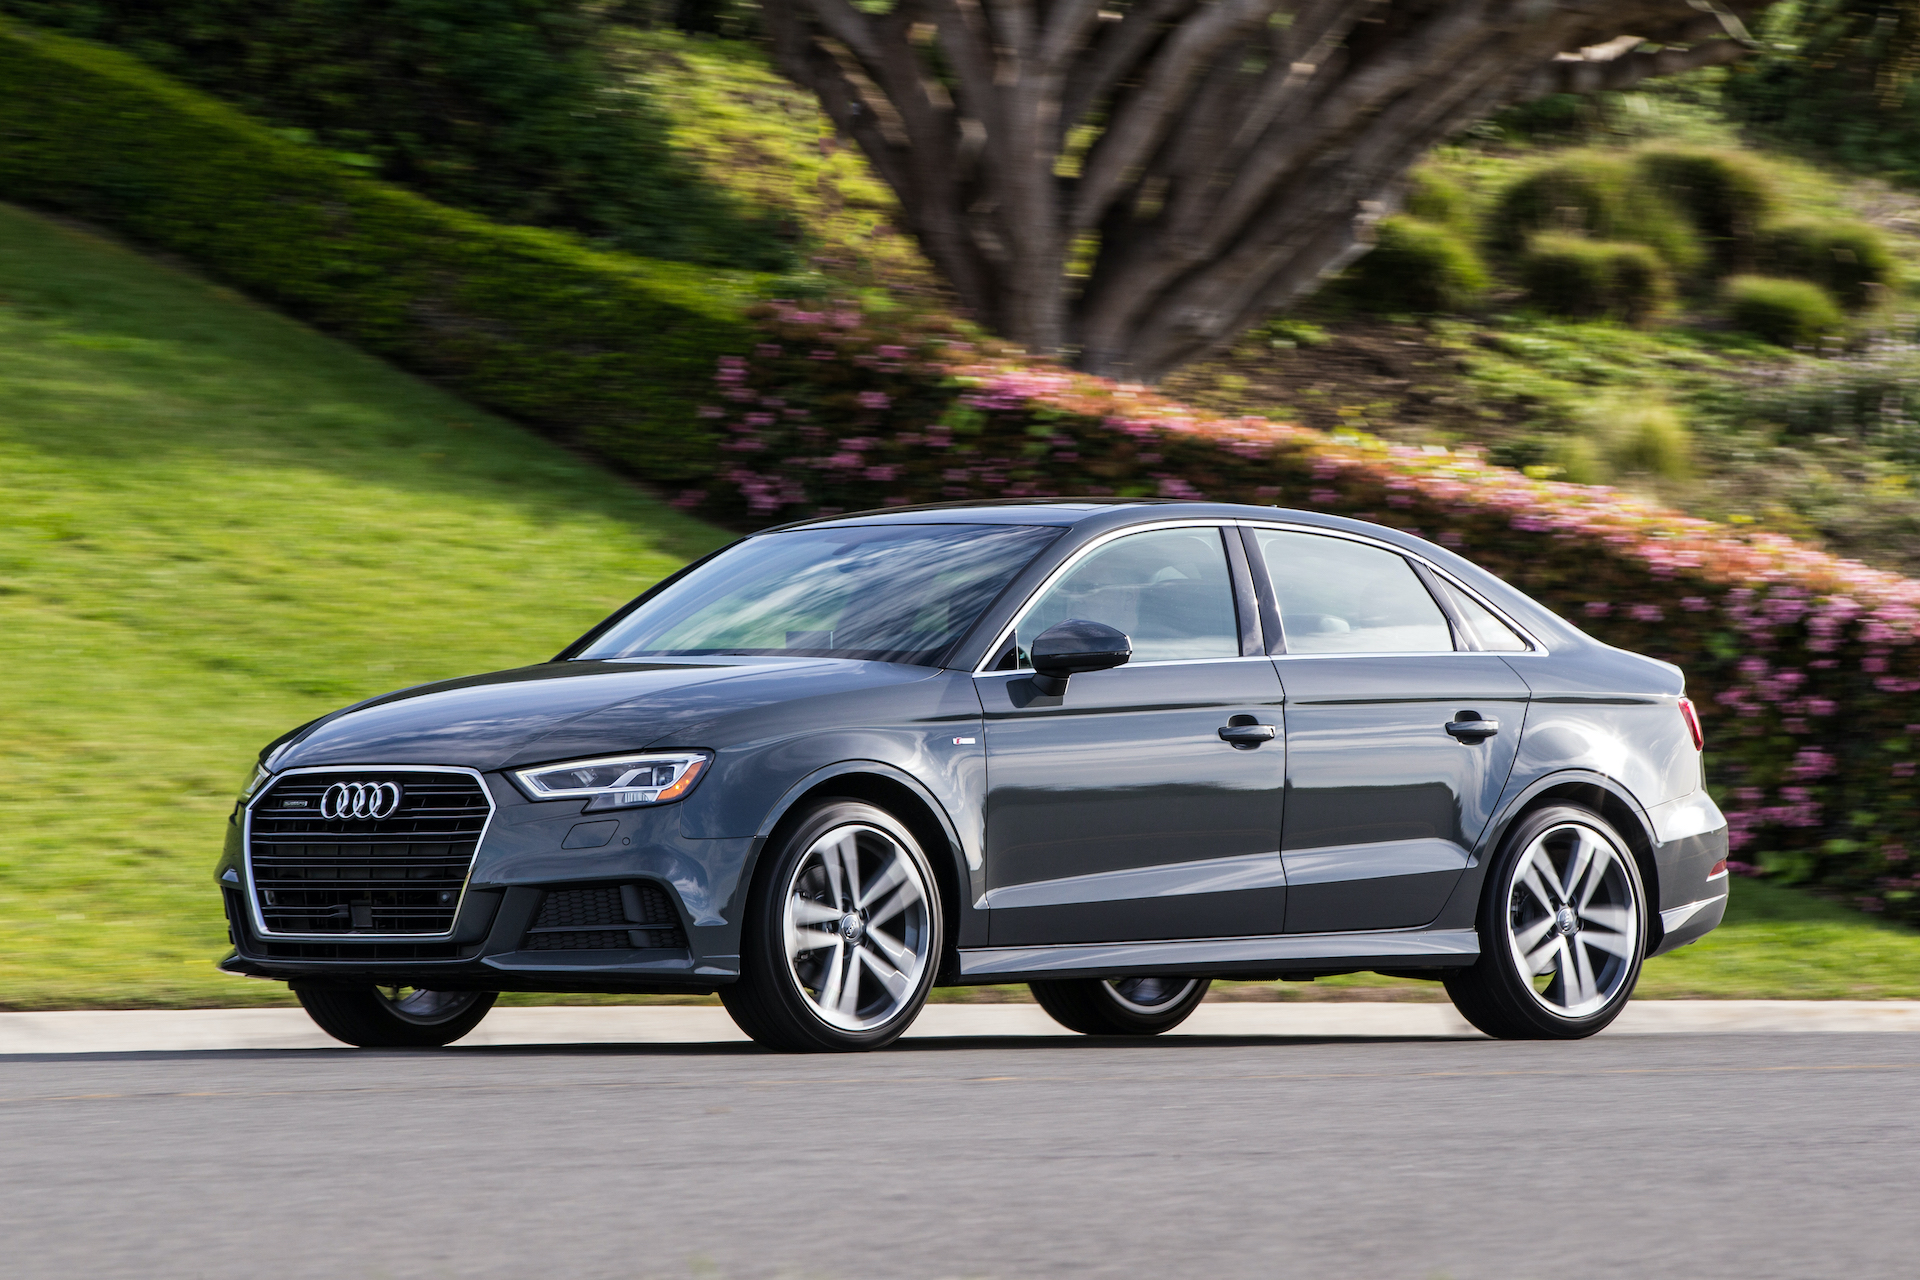 2020 Audi A3 Review.2020 Audi A3 Review Ratings Specs Prices And Photos